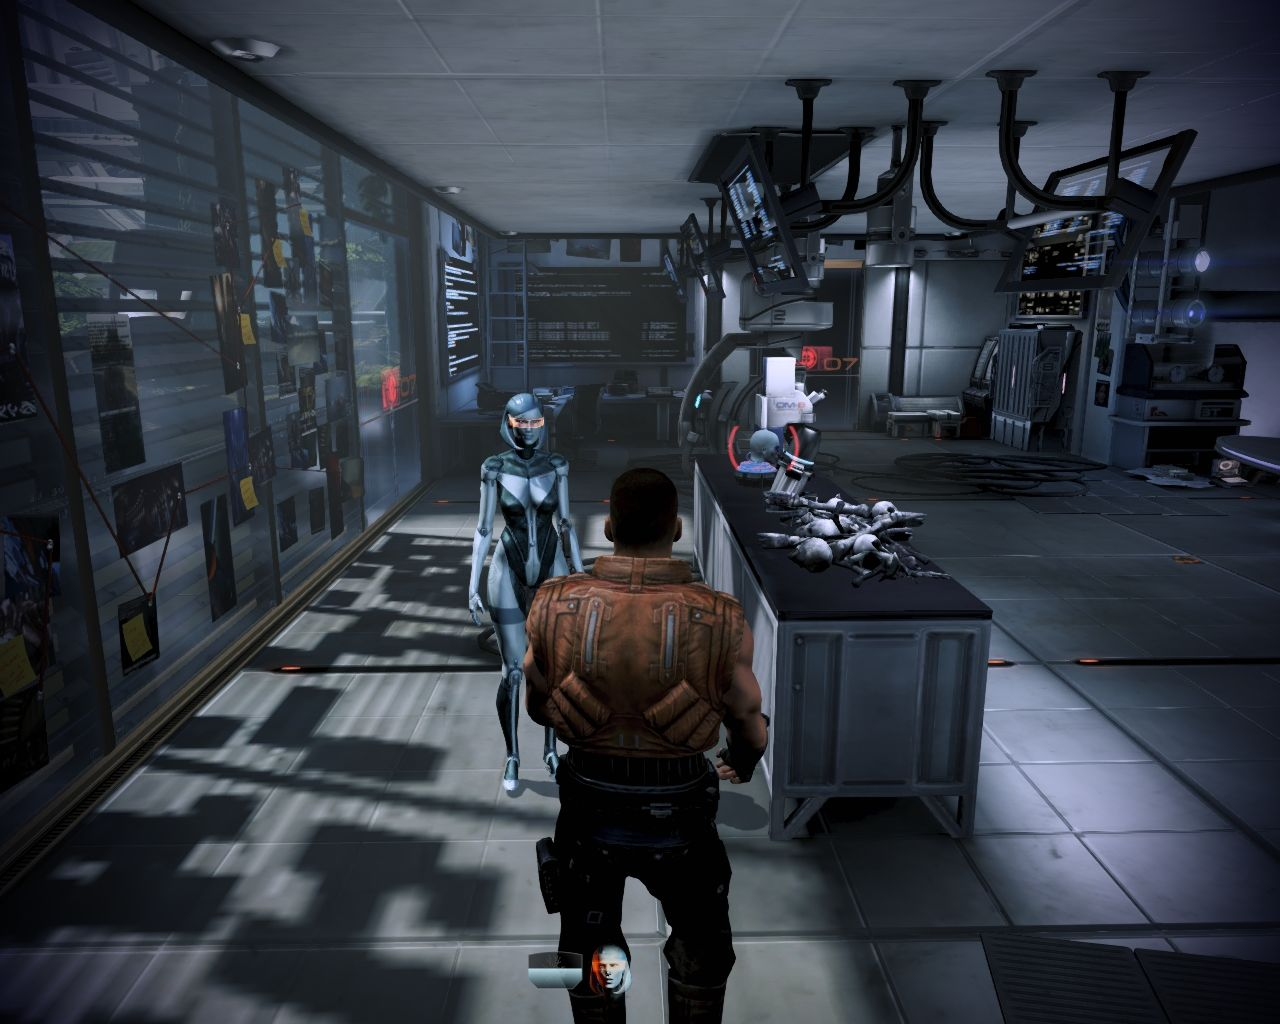 Mass Effect 3: Leviathan Windows EDI comes along on this mission.